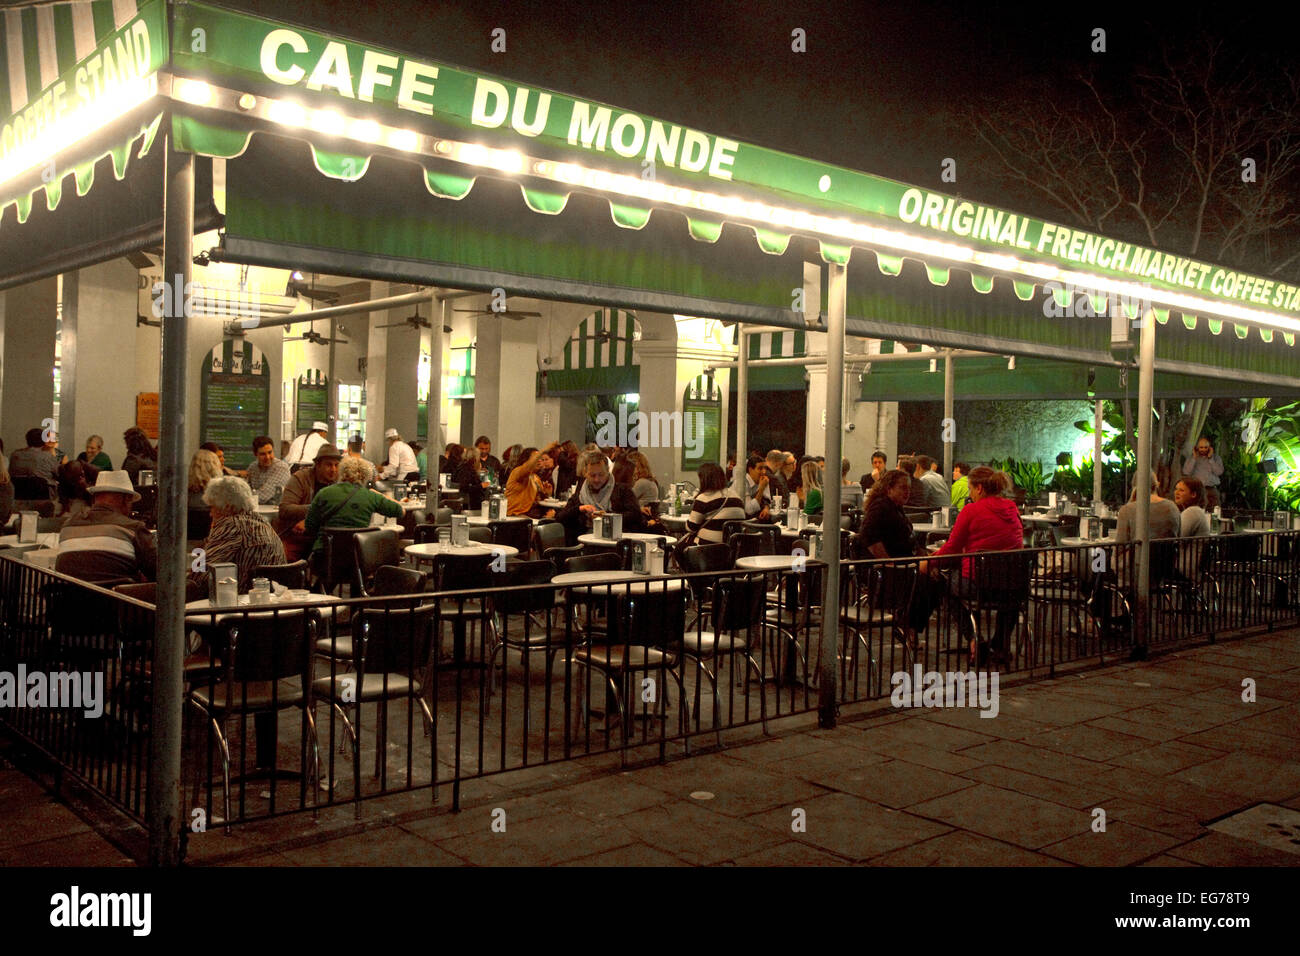 Exterior of Cafe Du Monde in the French Quarter, New Orleans, Louisiana, USA. - Stock Image